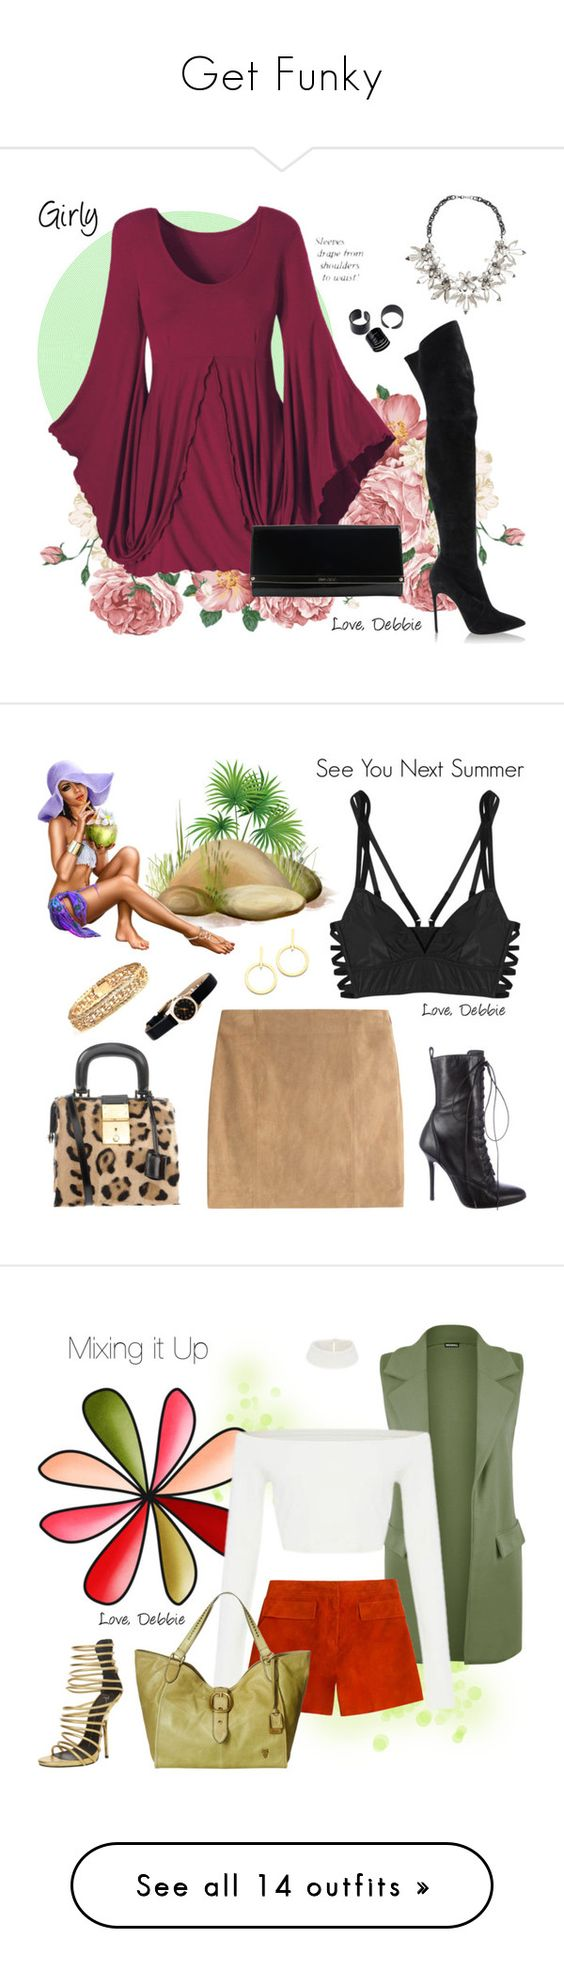 """""""Get Funky"""" by debbie-michailides ❤ liked on Polyvore featuring Casadei, John Lewis, Jimmy Choo, Lonely, Polo Ralph Lauren, Vita Fede, Marc by Marc Jacobs, Giuseppe Zanotti, Dsquared2 and WearAll"""